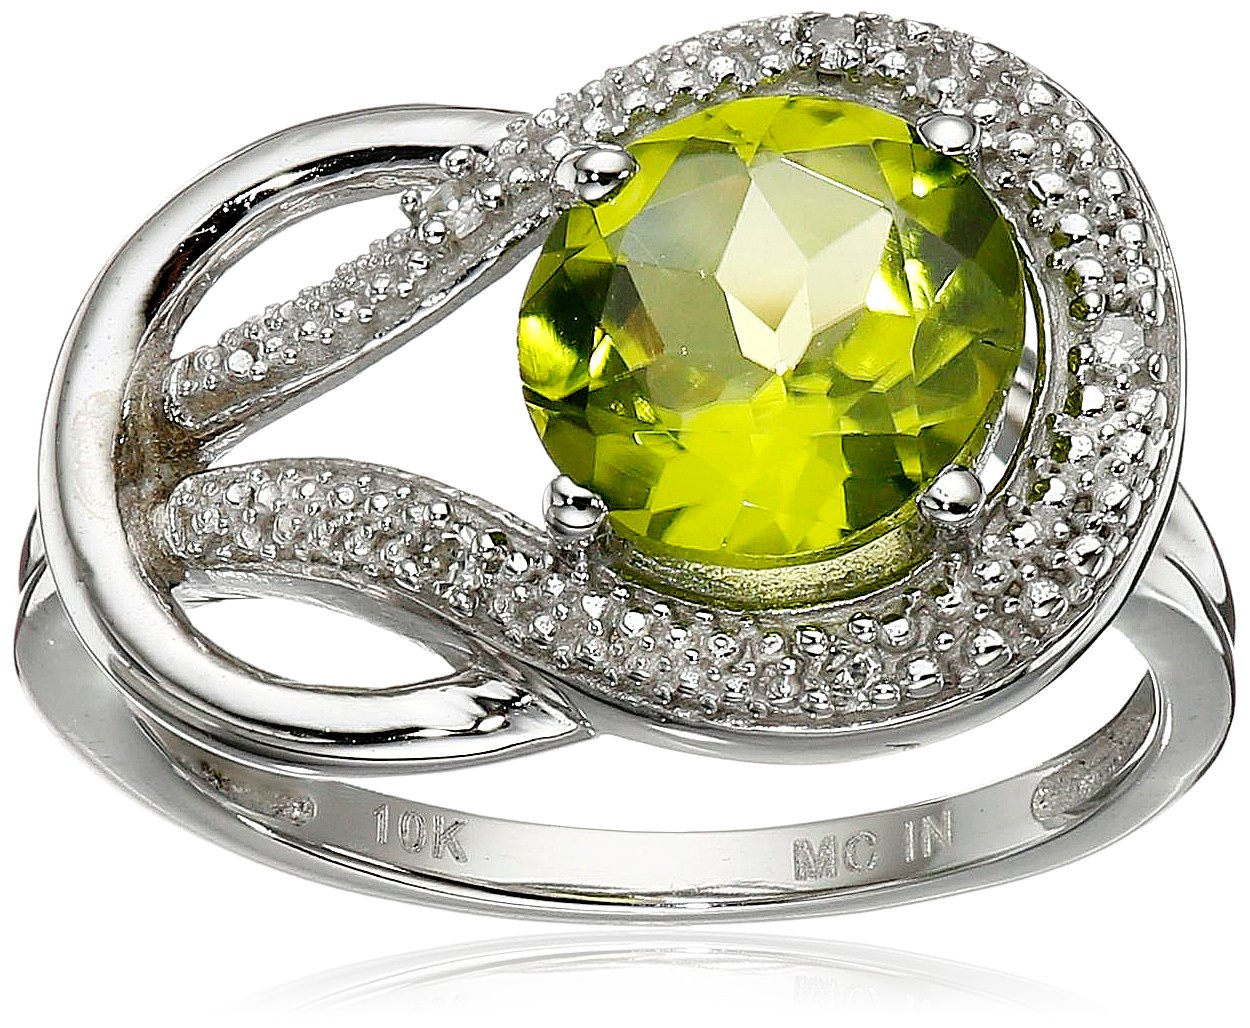 Peridot and Diamond Accent Love Knot Ring in 10k White Gold, Size 8